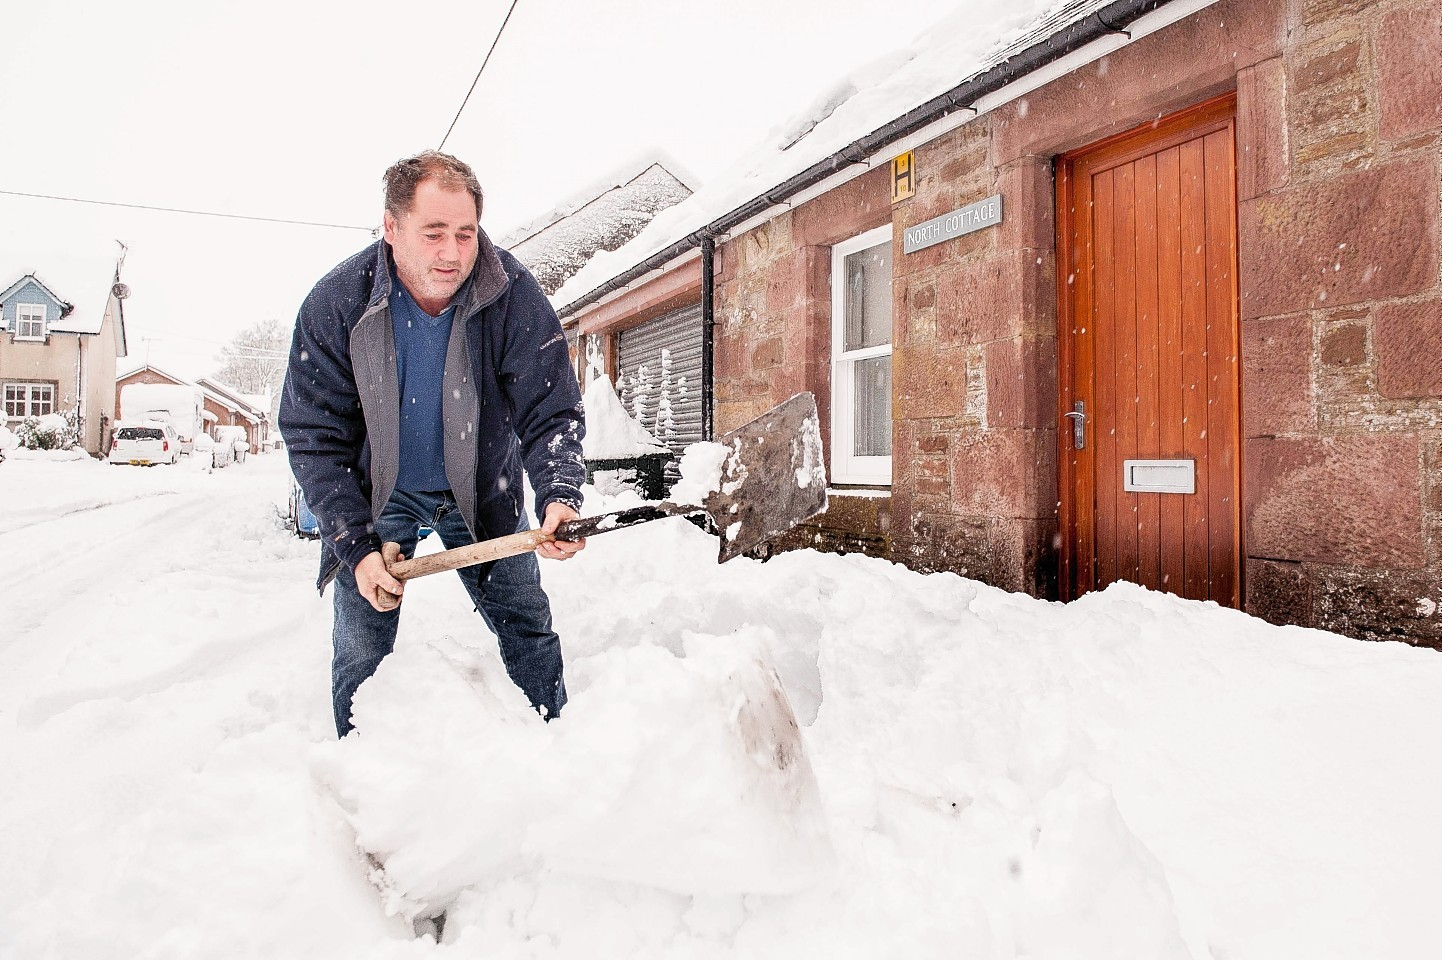 Perthshire has been particularly badly hit by the snow.